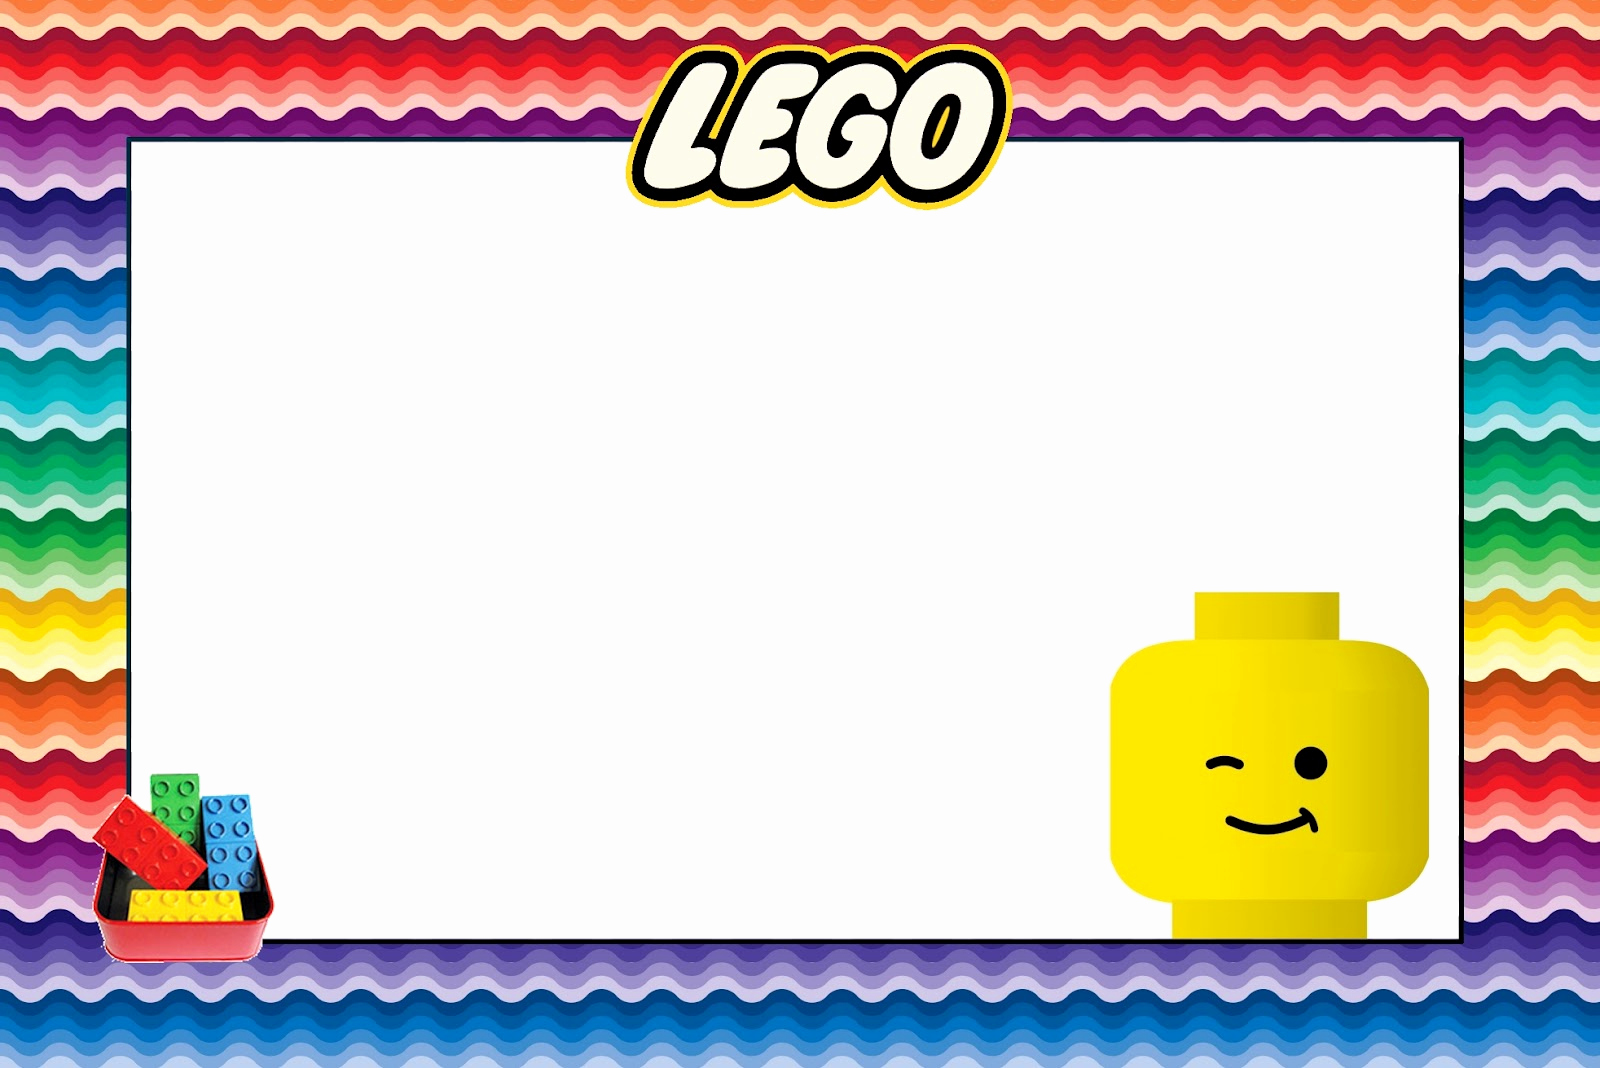 Lego Party Invitation Template Unique Lego Free Printable Invitations Oh My Fiesta In English